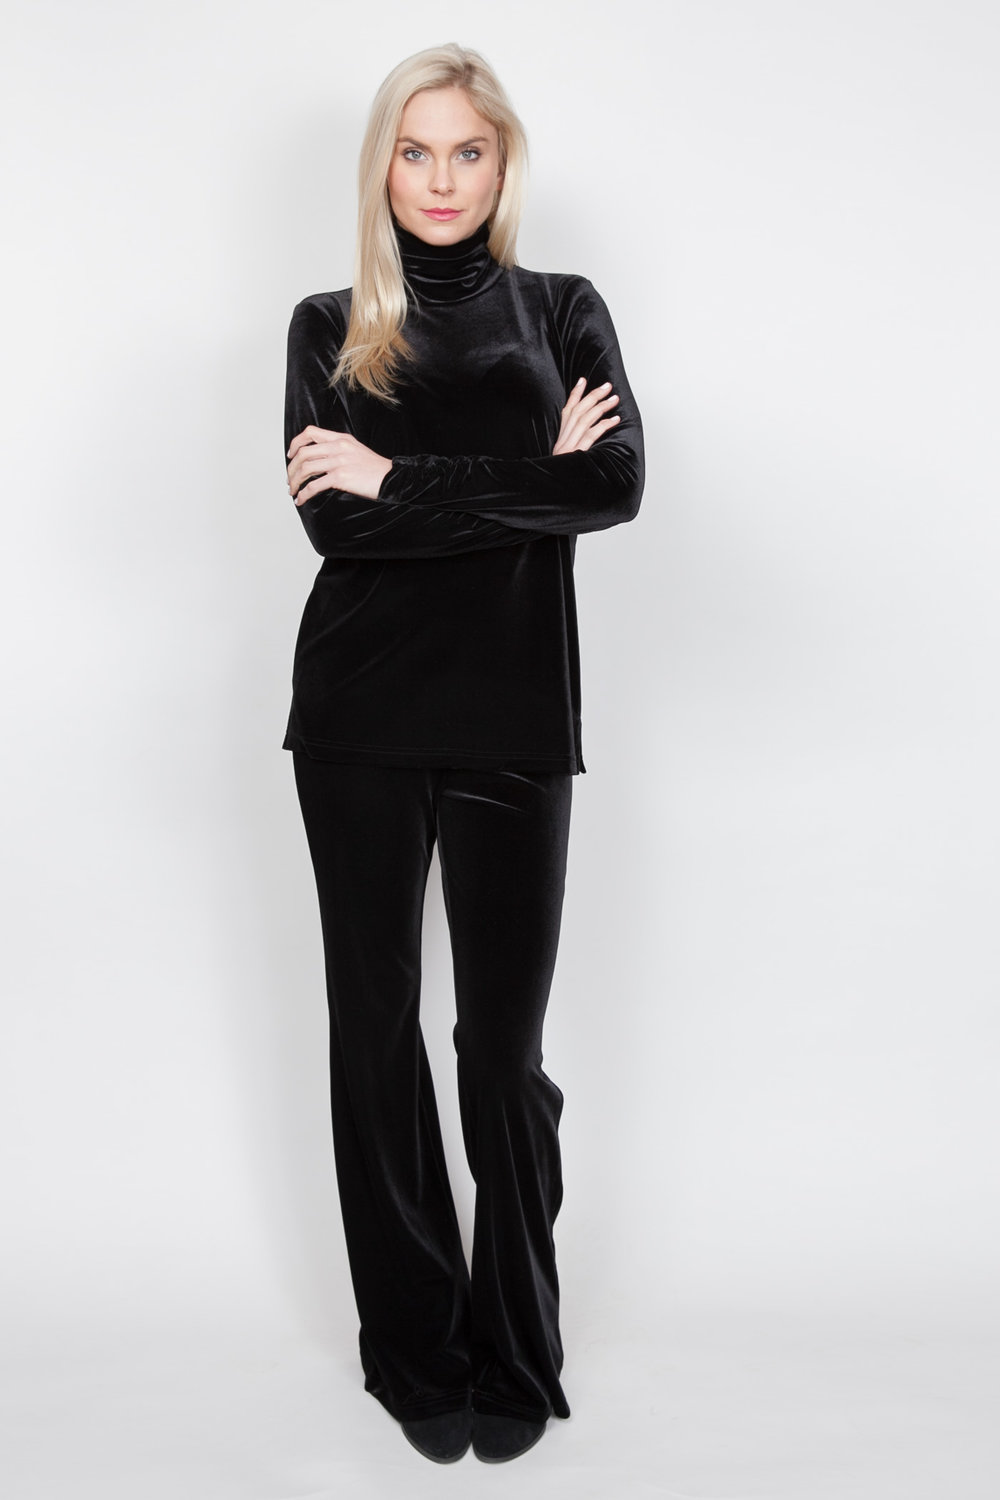 Copy of Style # 11228-18, p 13 </br>Plush Tech Velvet, Fit/Flair Pant </br>Color: Black + 5 others